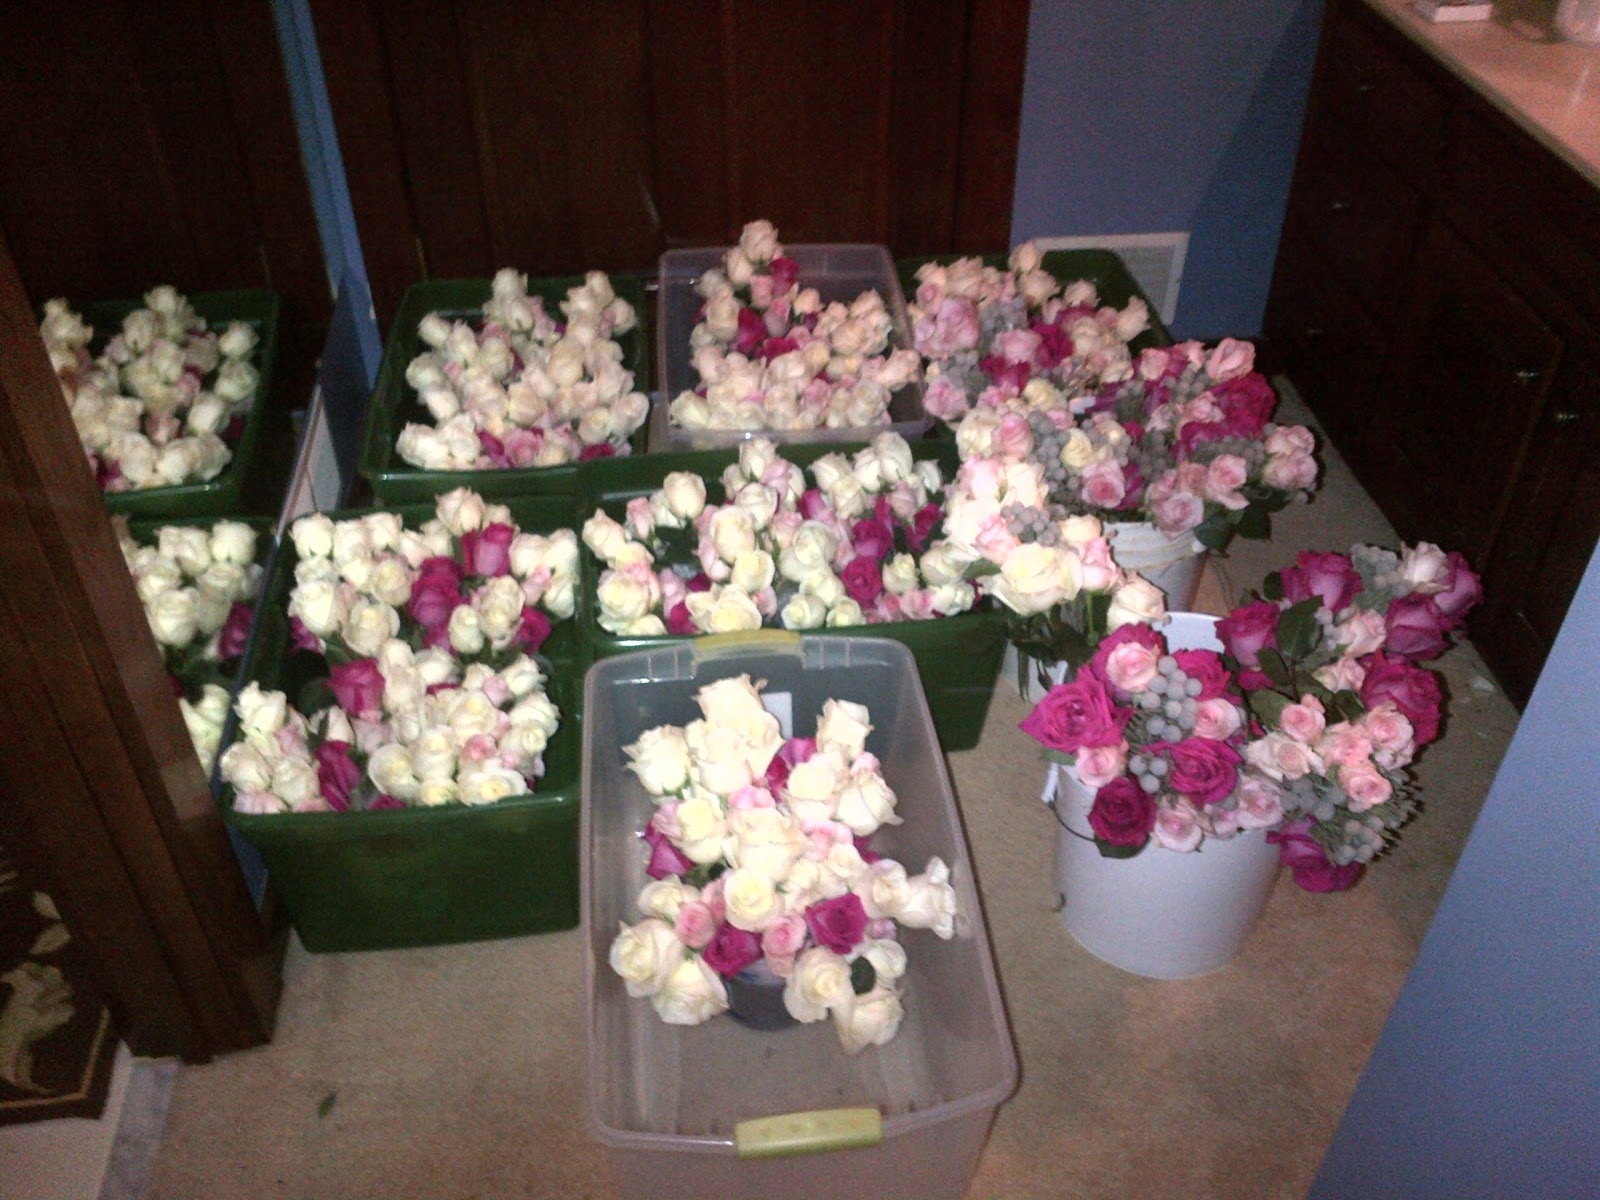 Rose bouquets in buckets